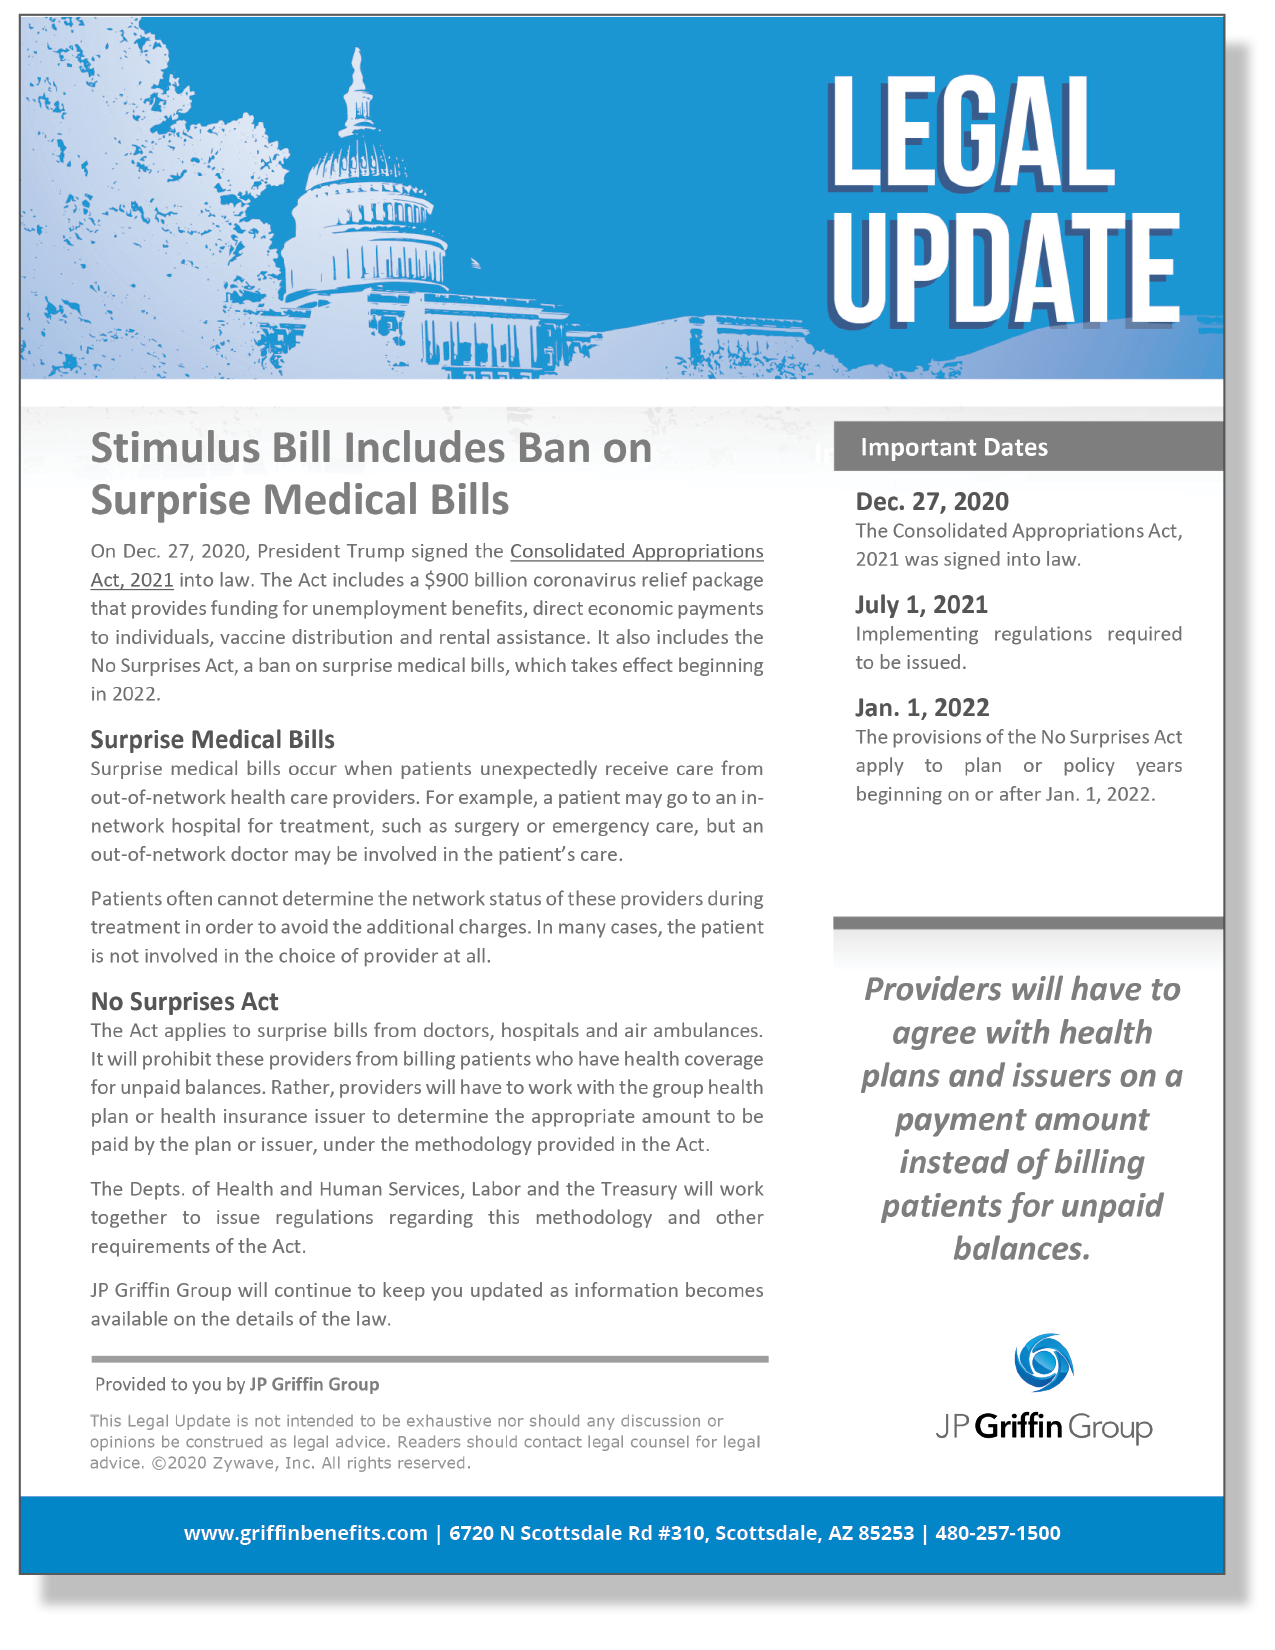 Congress Passes Surprise Medical Bill Ban as Part of Stimulus Bill